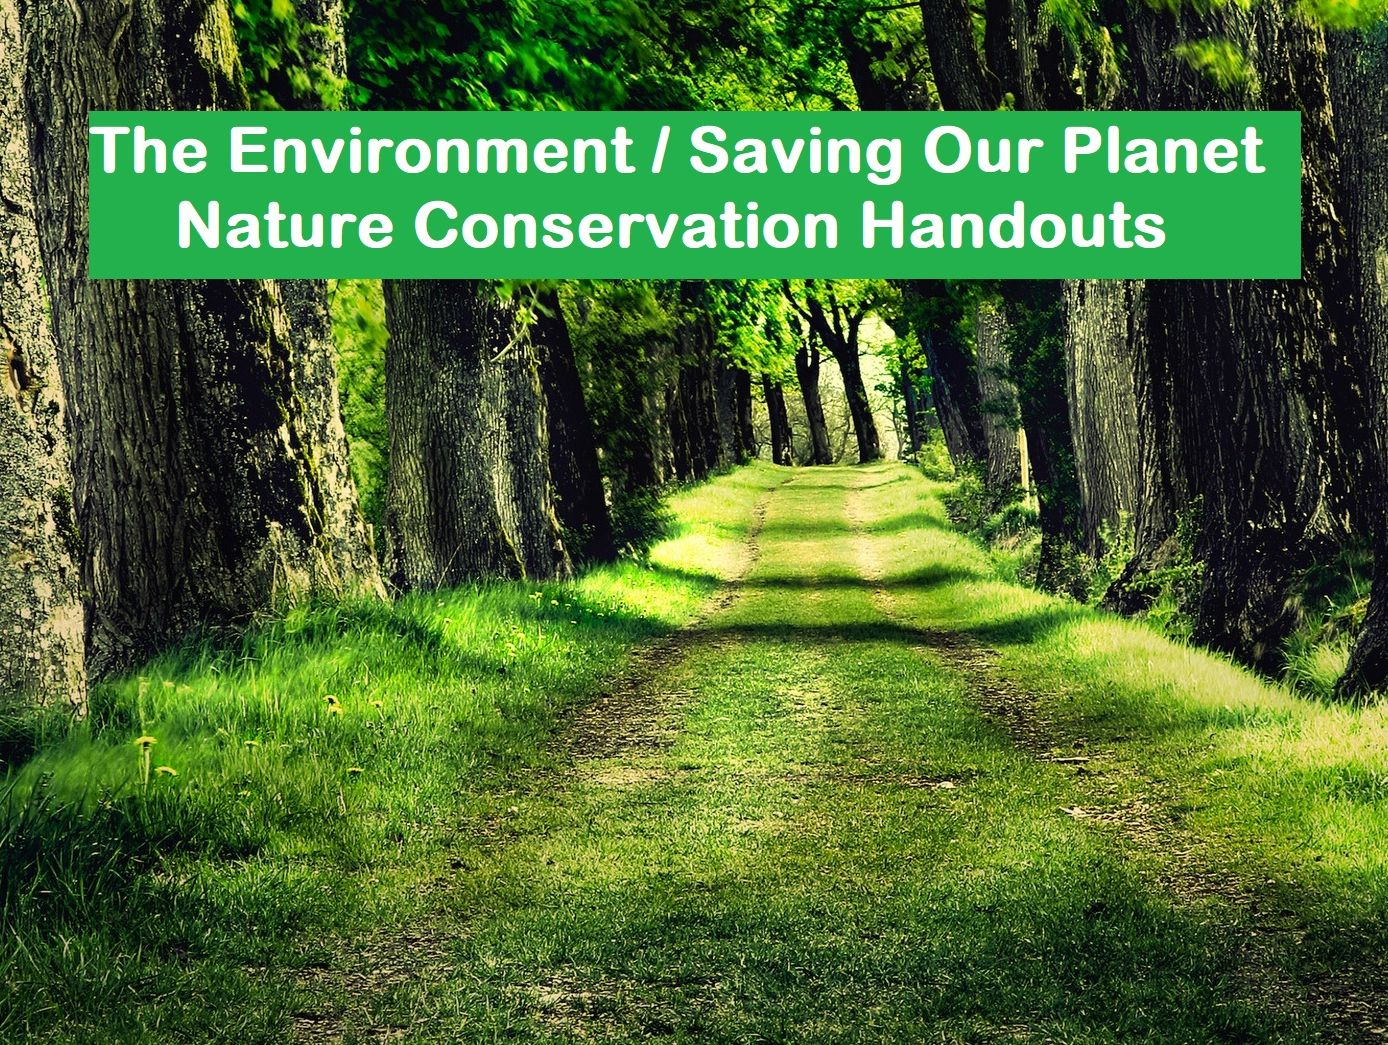 The Environment/ Saving Our Planet / Nature Conservation Handouts (SAVE 75%)